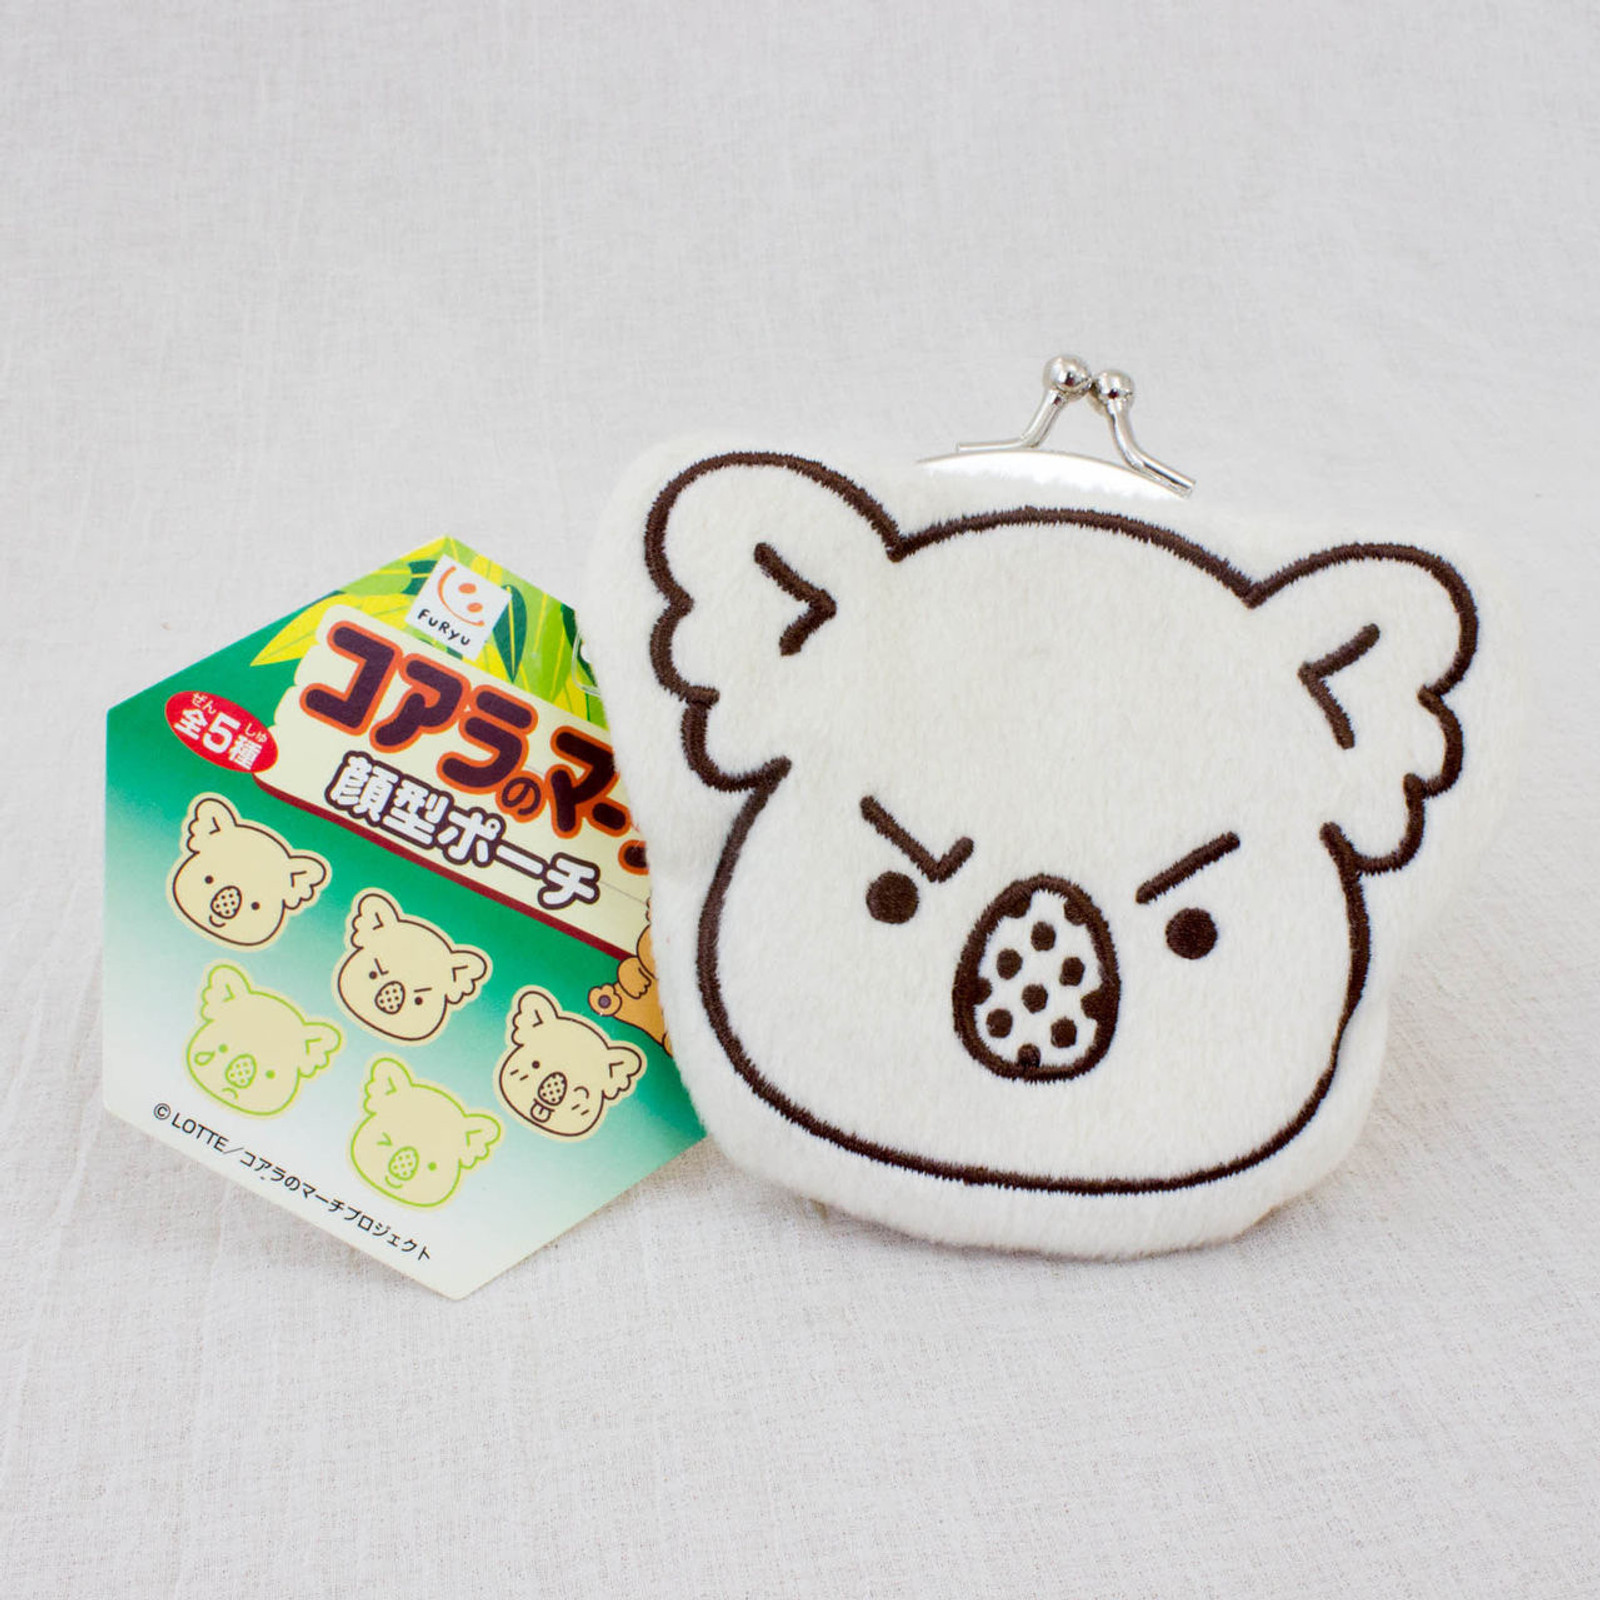 Koala's March Face Type Coin Case Mini Pouch Furyu JAPAN FOOD LOTTE 1